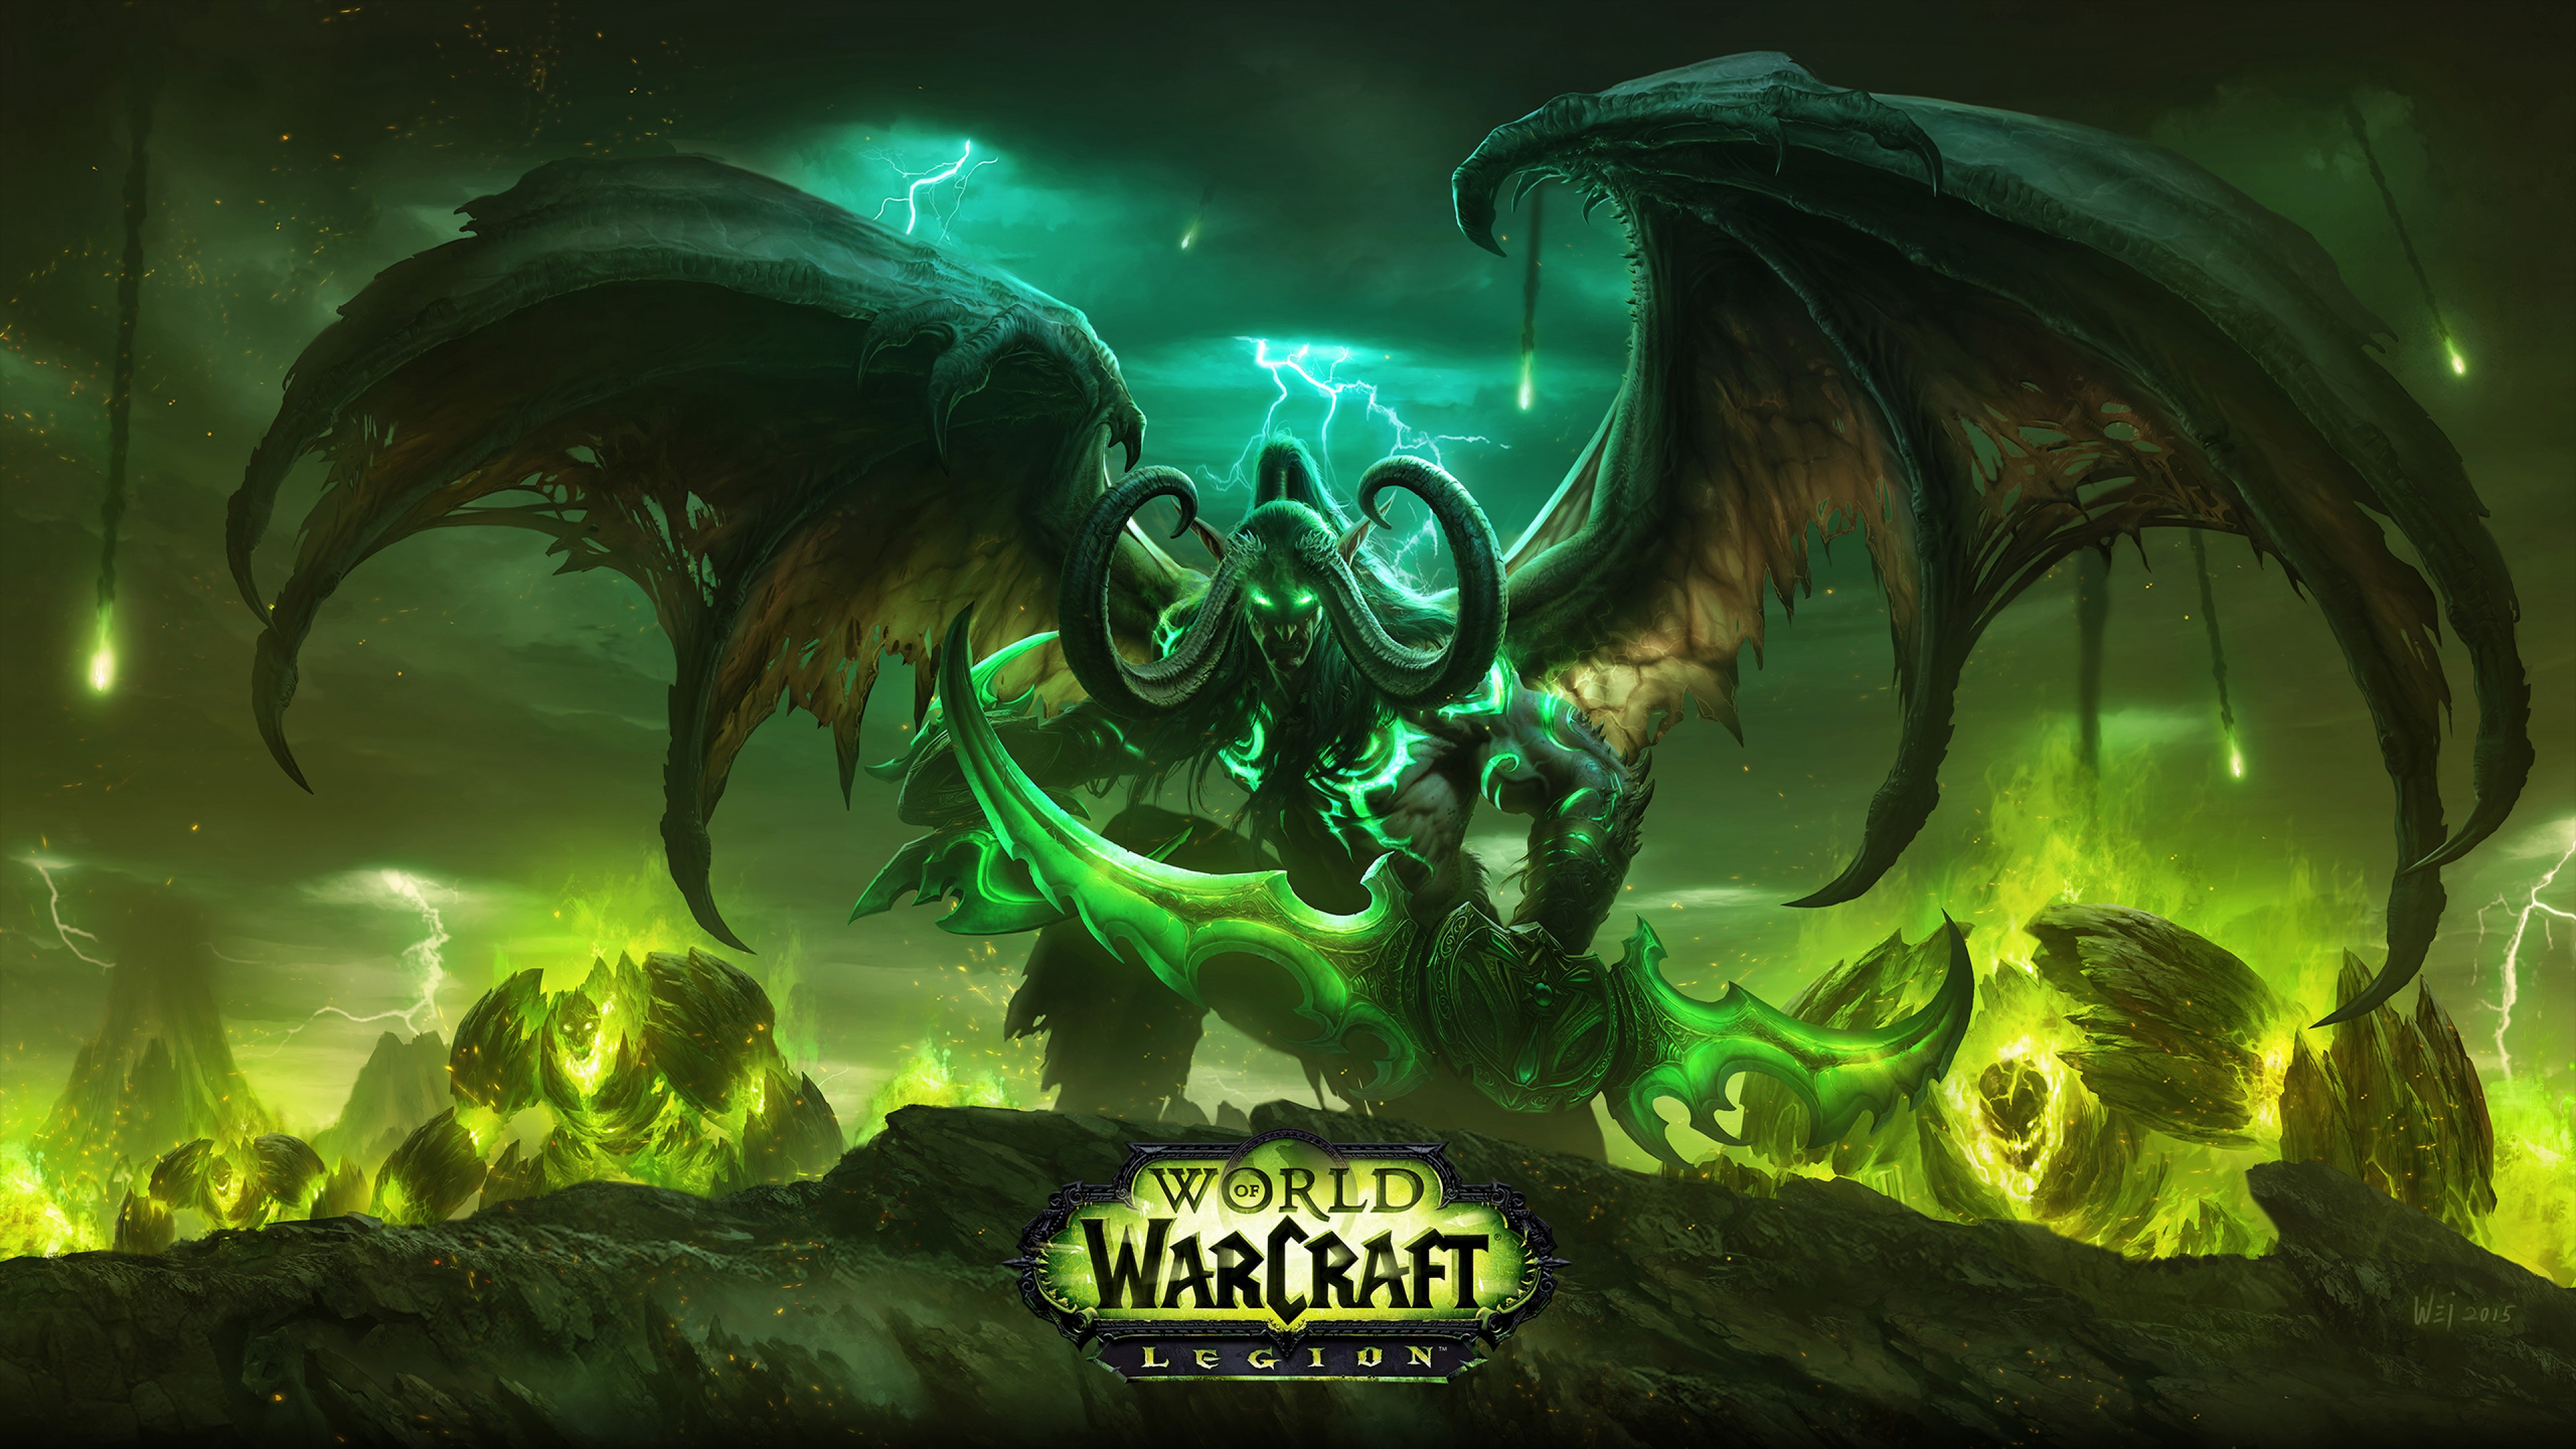 World Of Warcraft Wow Legion Hd Wallpaper for Desktop and